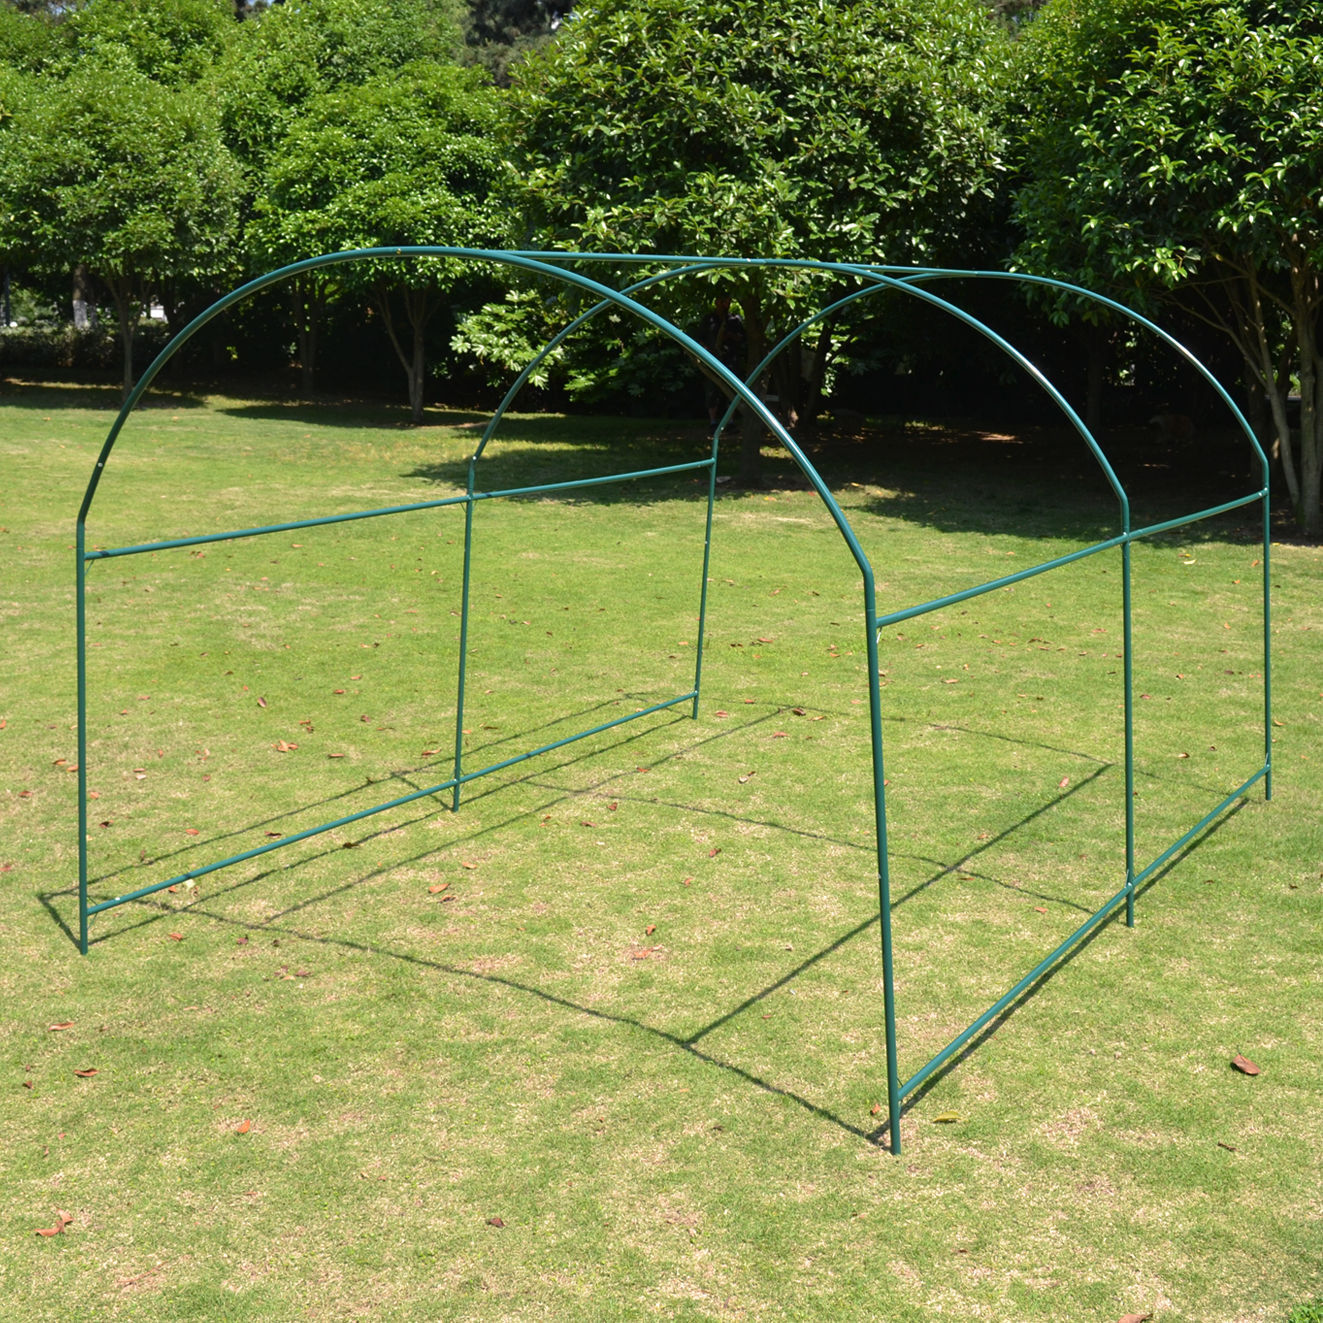 Best Portable Greenhouse : Portable greenhouse canopy